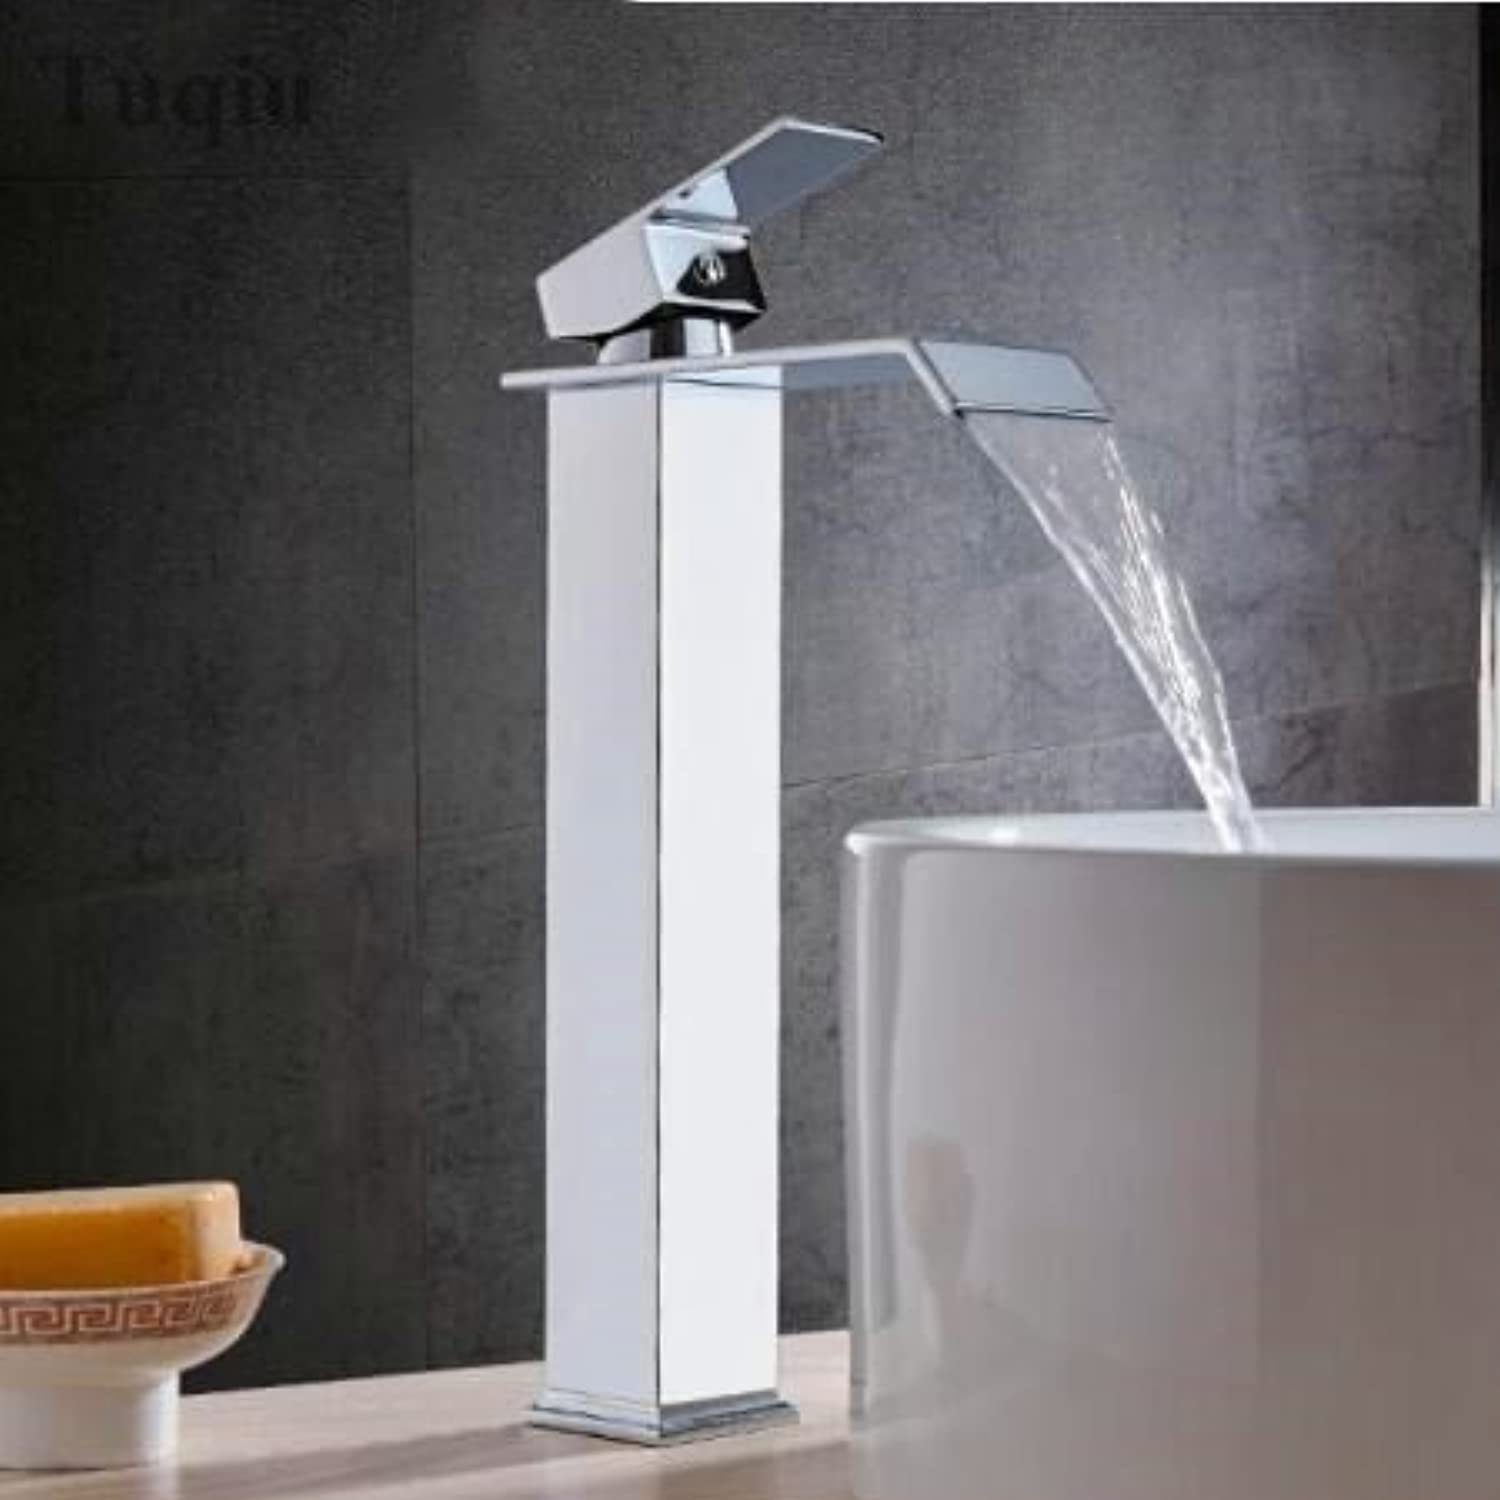 golden Square Sinks taps Waterfall Single Hand wash Basin Mixer Crane Sinks of Water, or Long of Chrome color